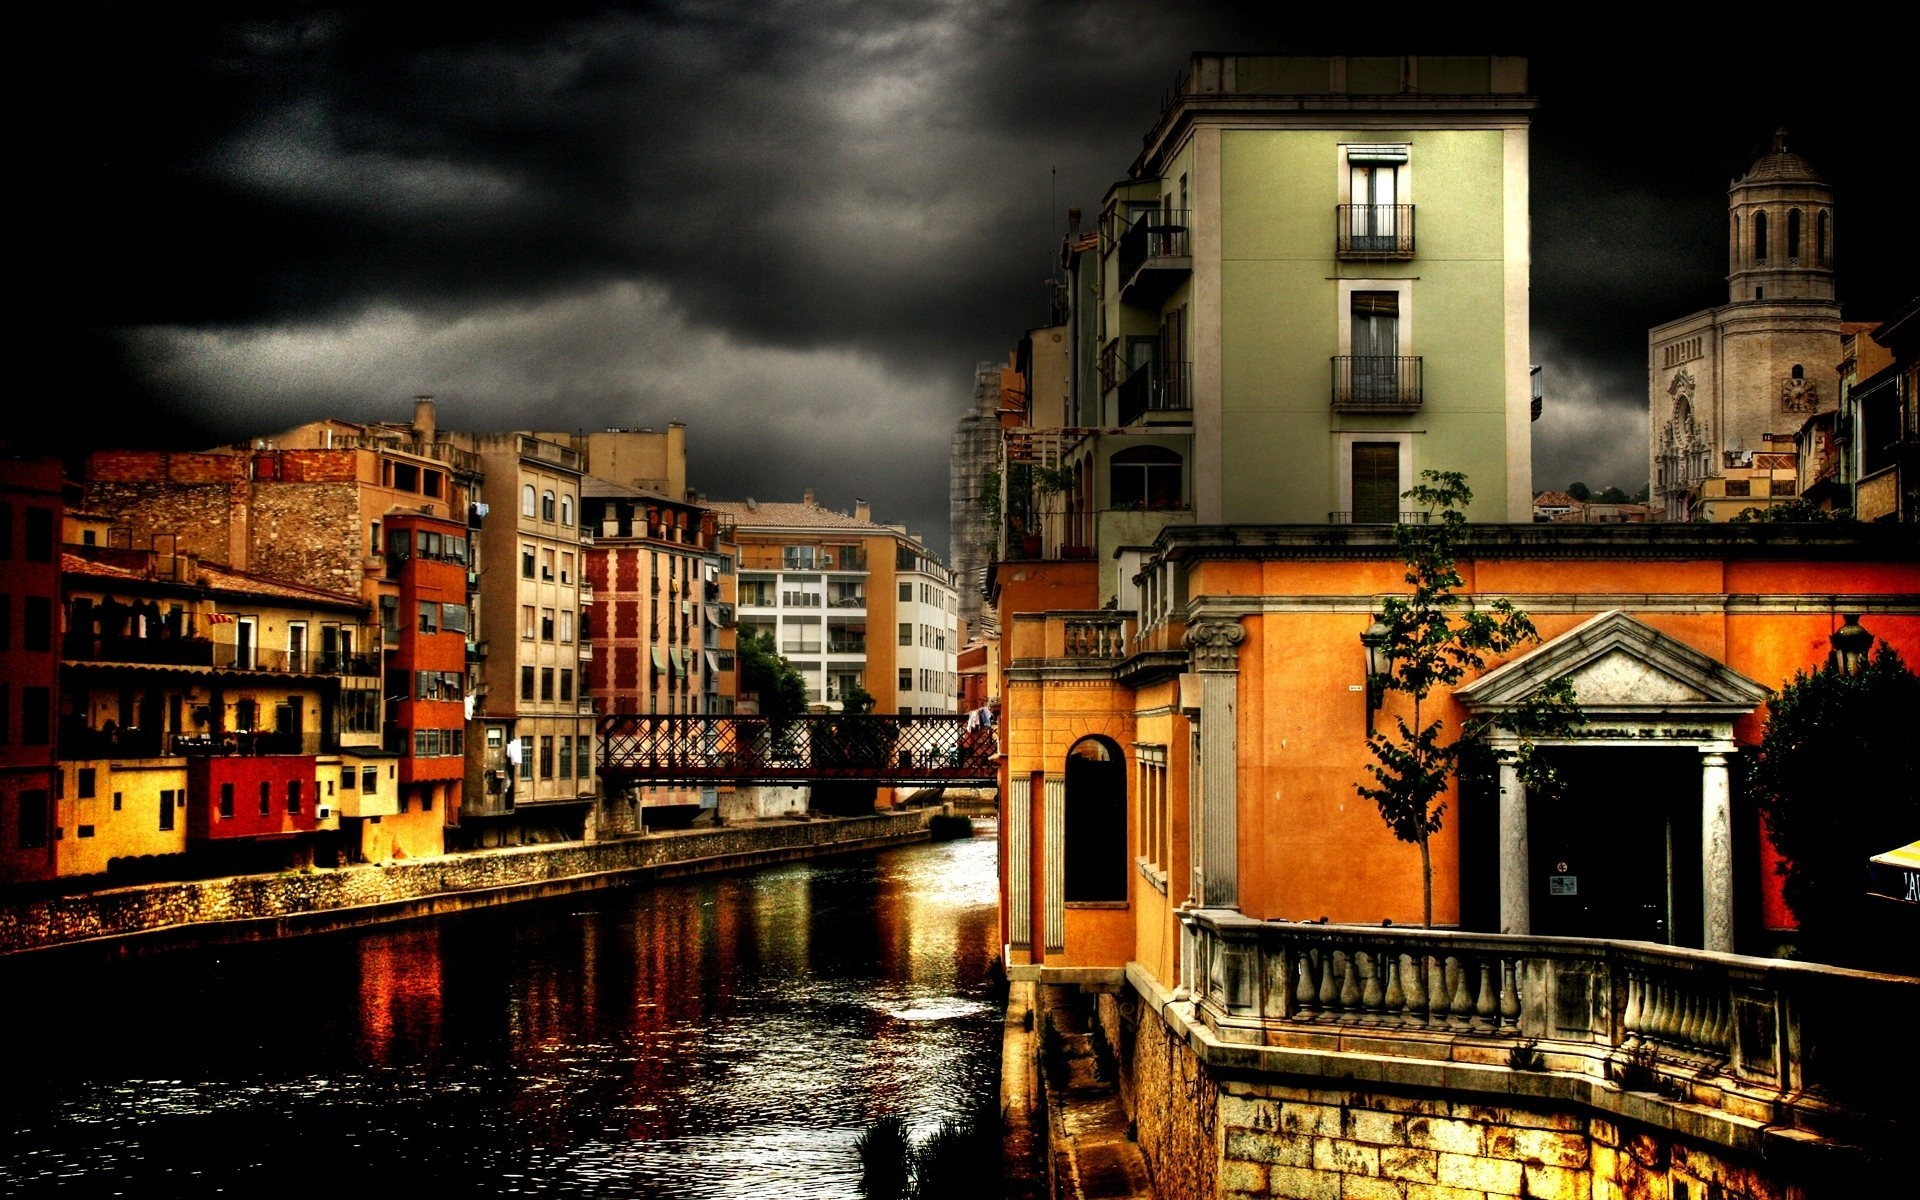 other city city travel architecture street building water canal river urban house bridge town outdoors reflection illuminated dusk evening tourism sunset buildings night